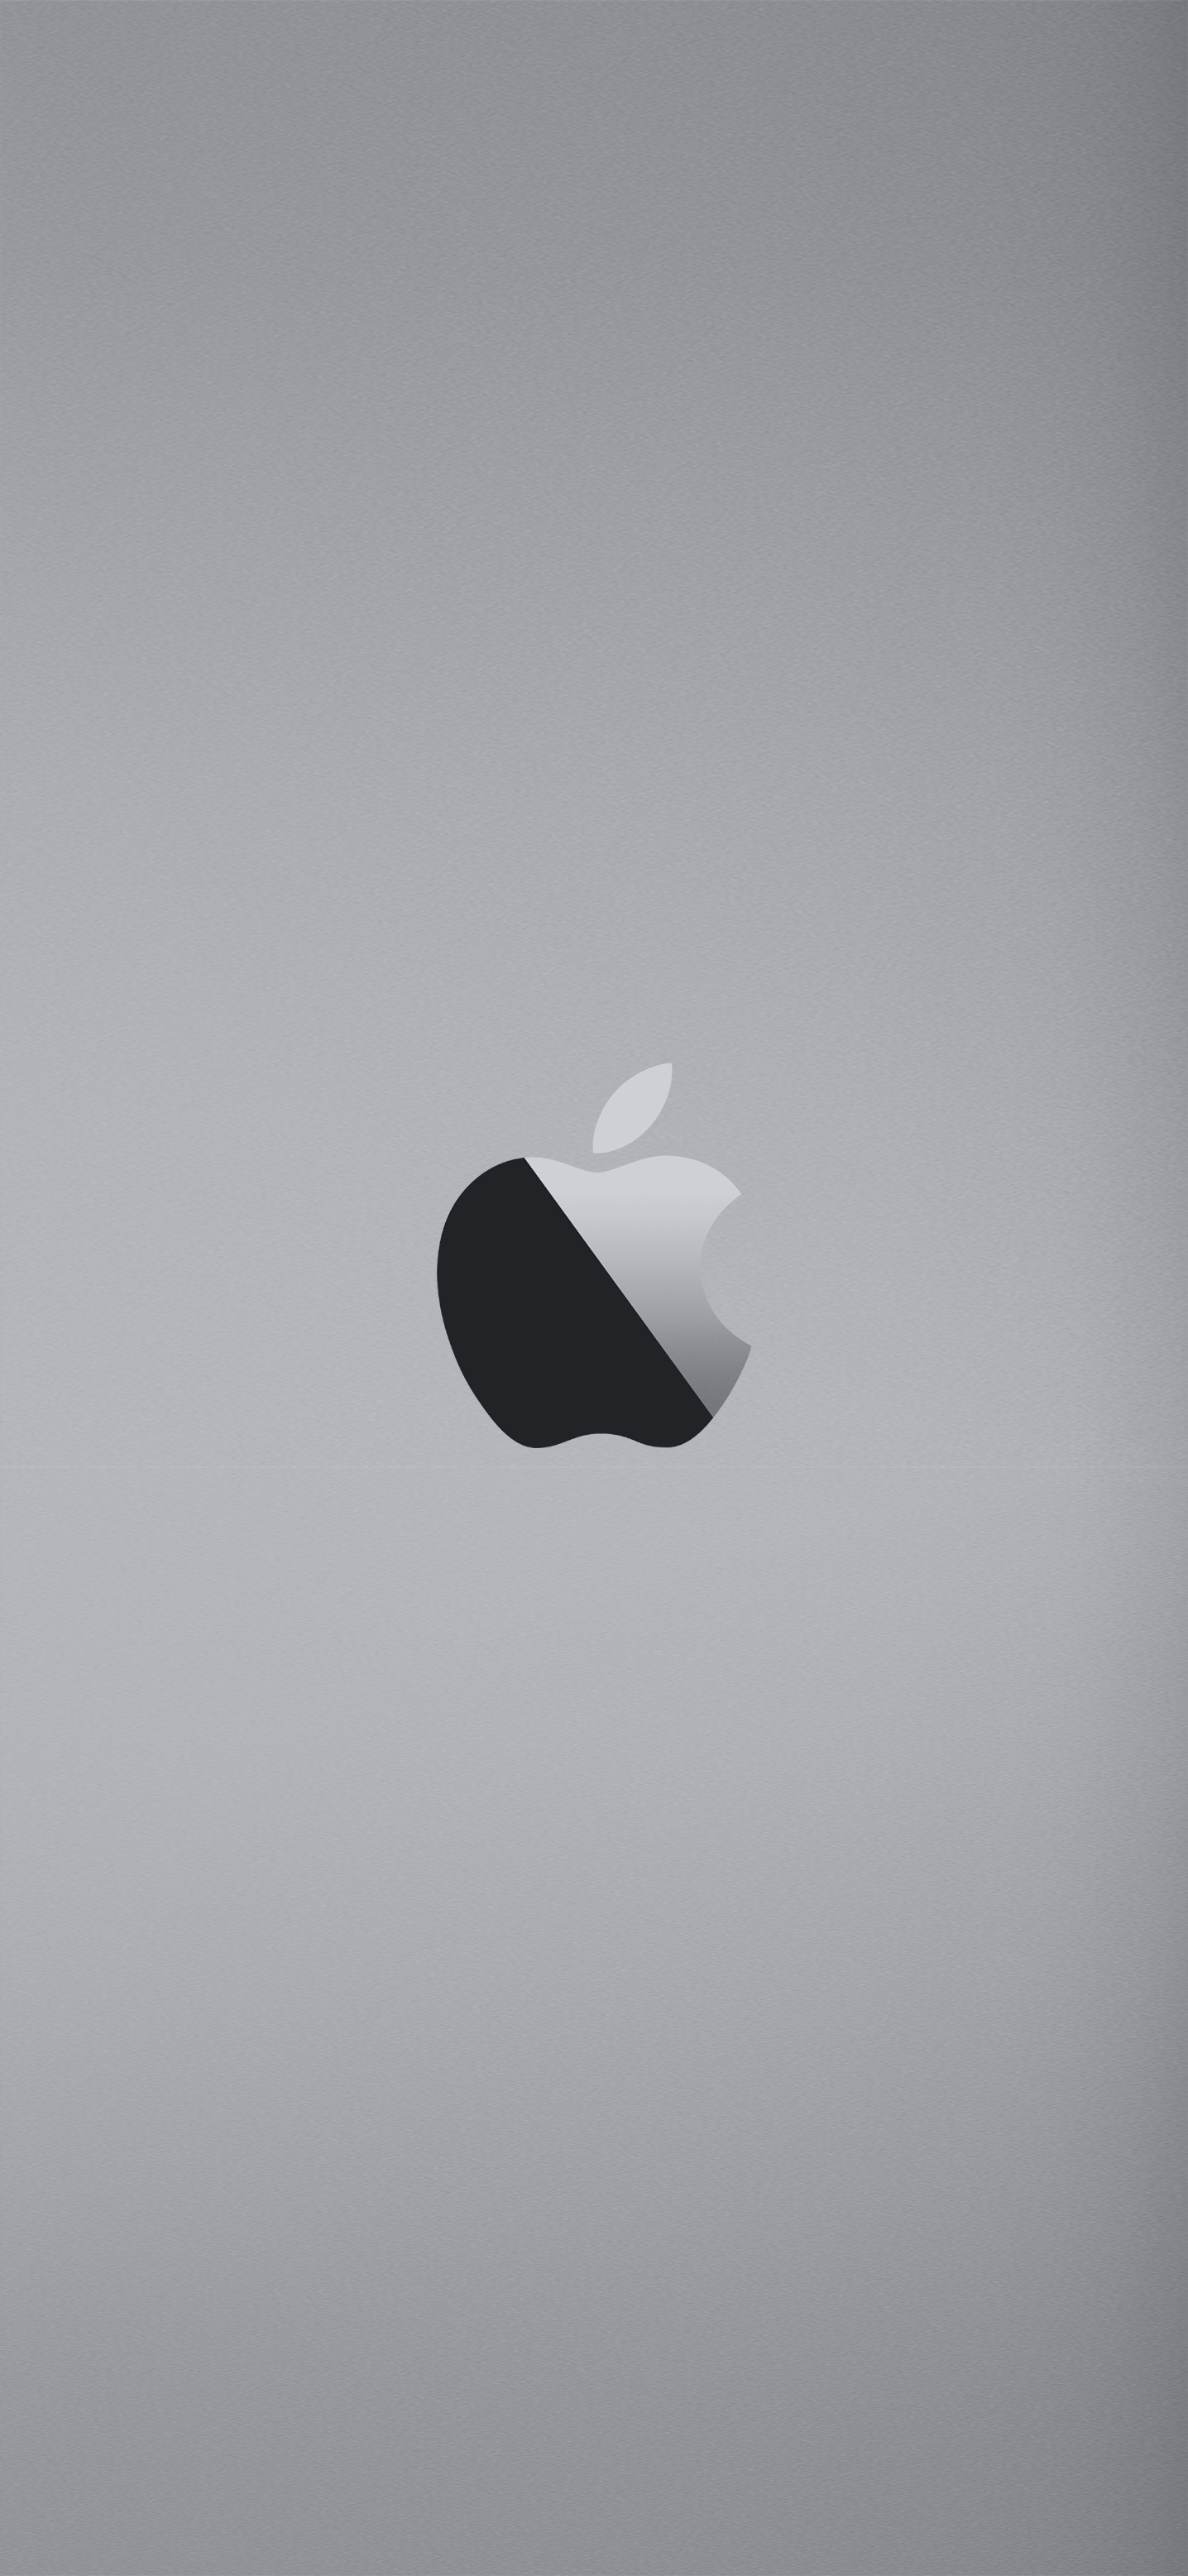 Wwdc 2020 Official Wallpaper Apple Logo Wwdc20 Wallpapers Central